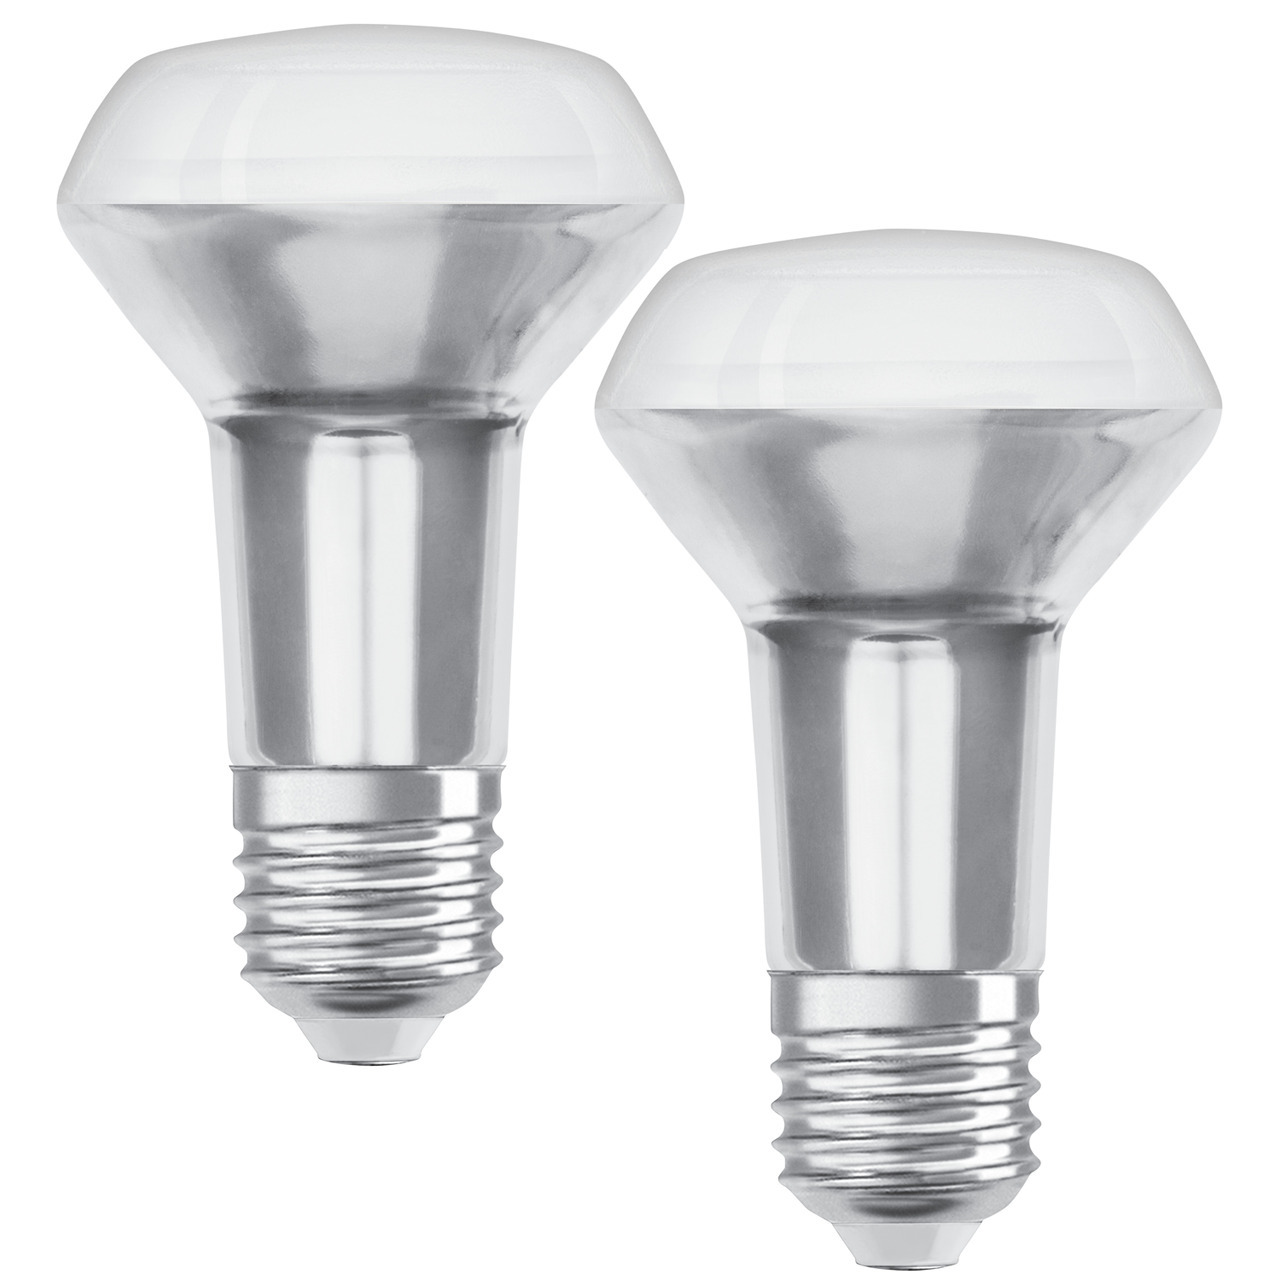 OSRAM 2er Pack 4-37-W-R63-LED-Reflektorlampen E27- warmweiss- 36-